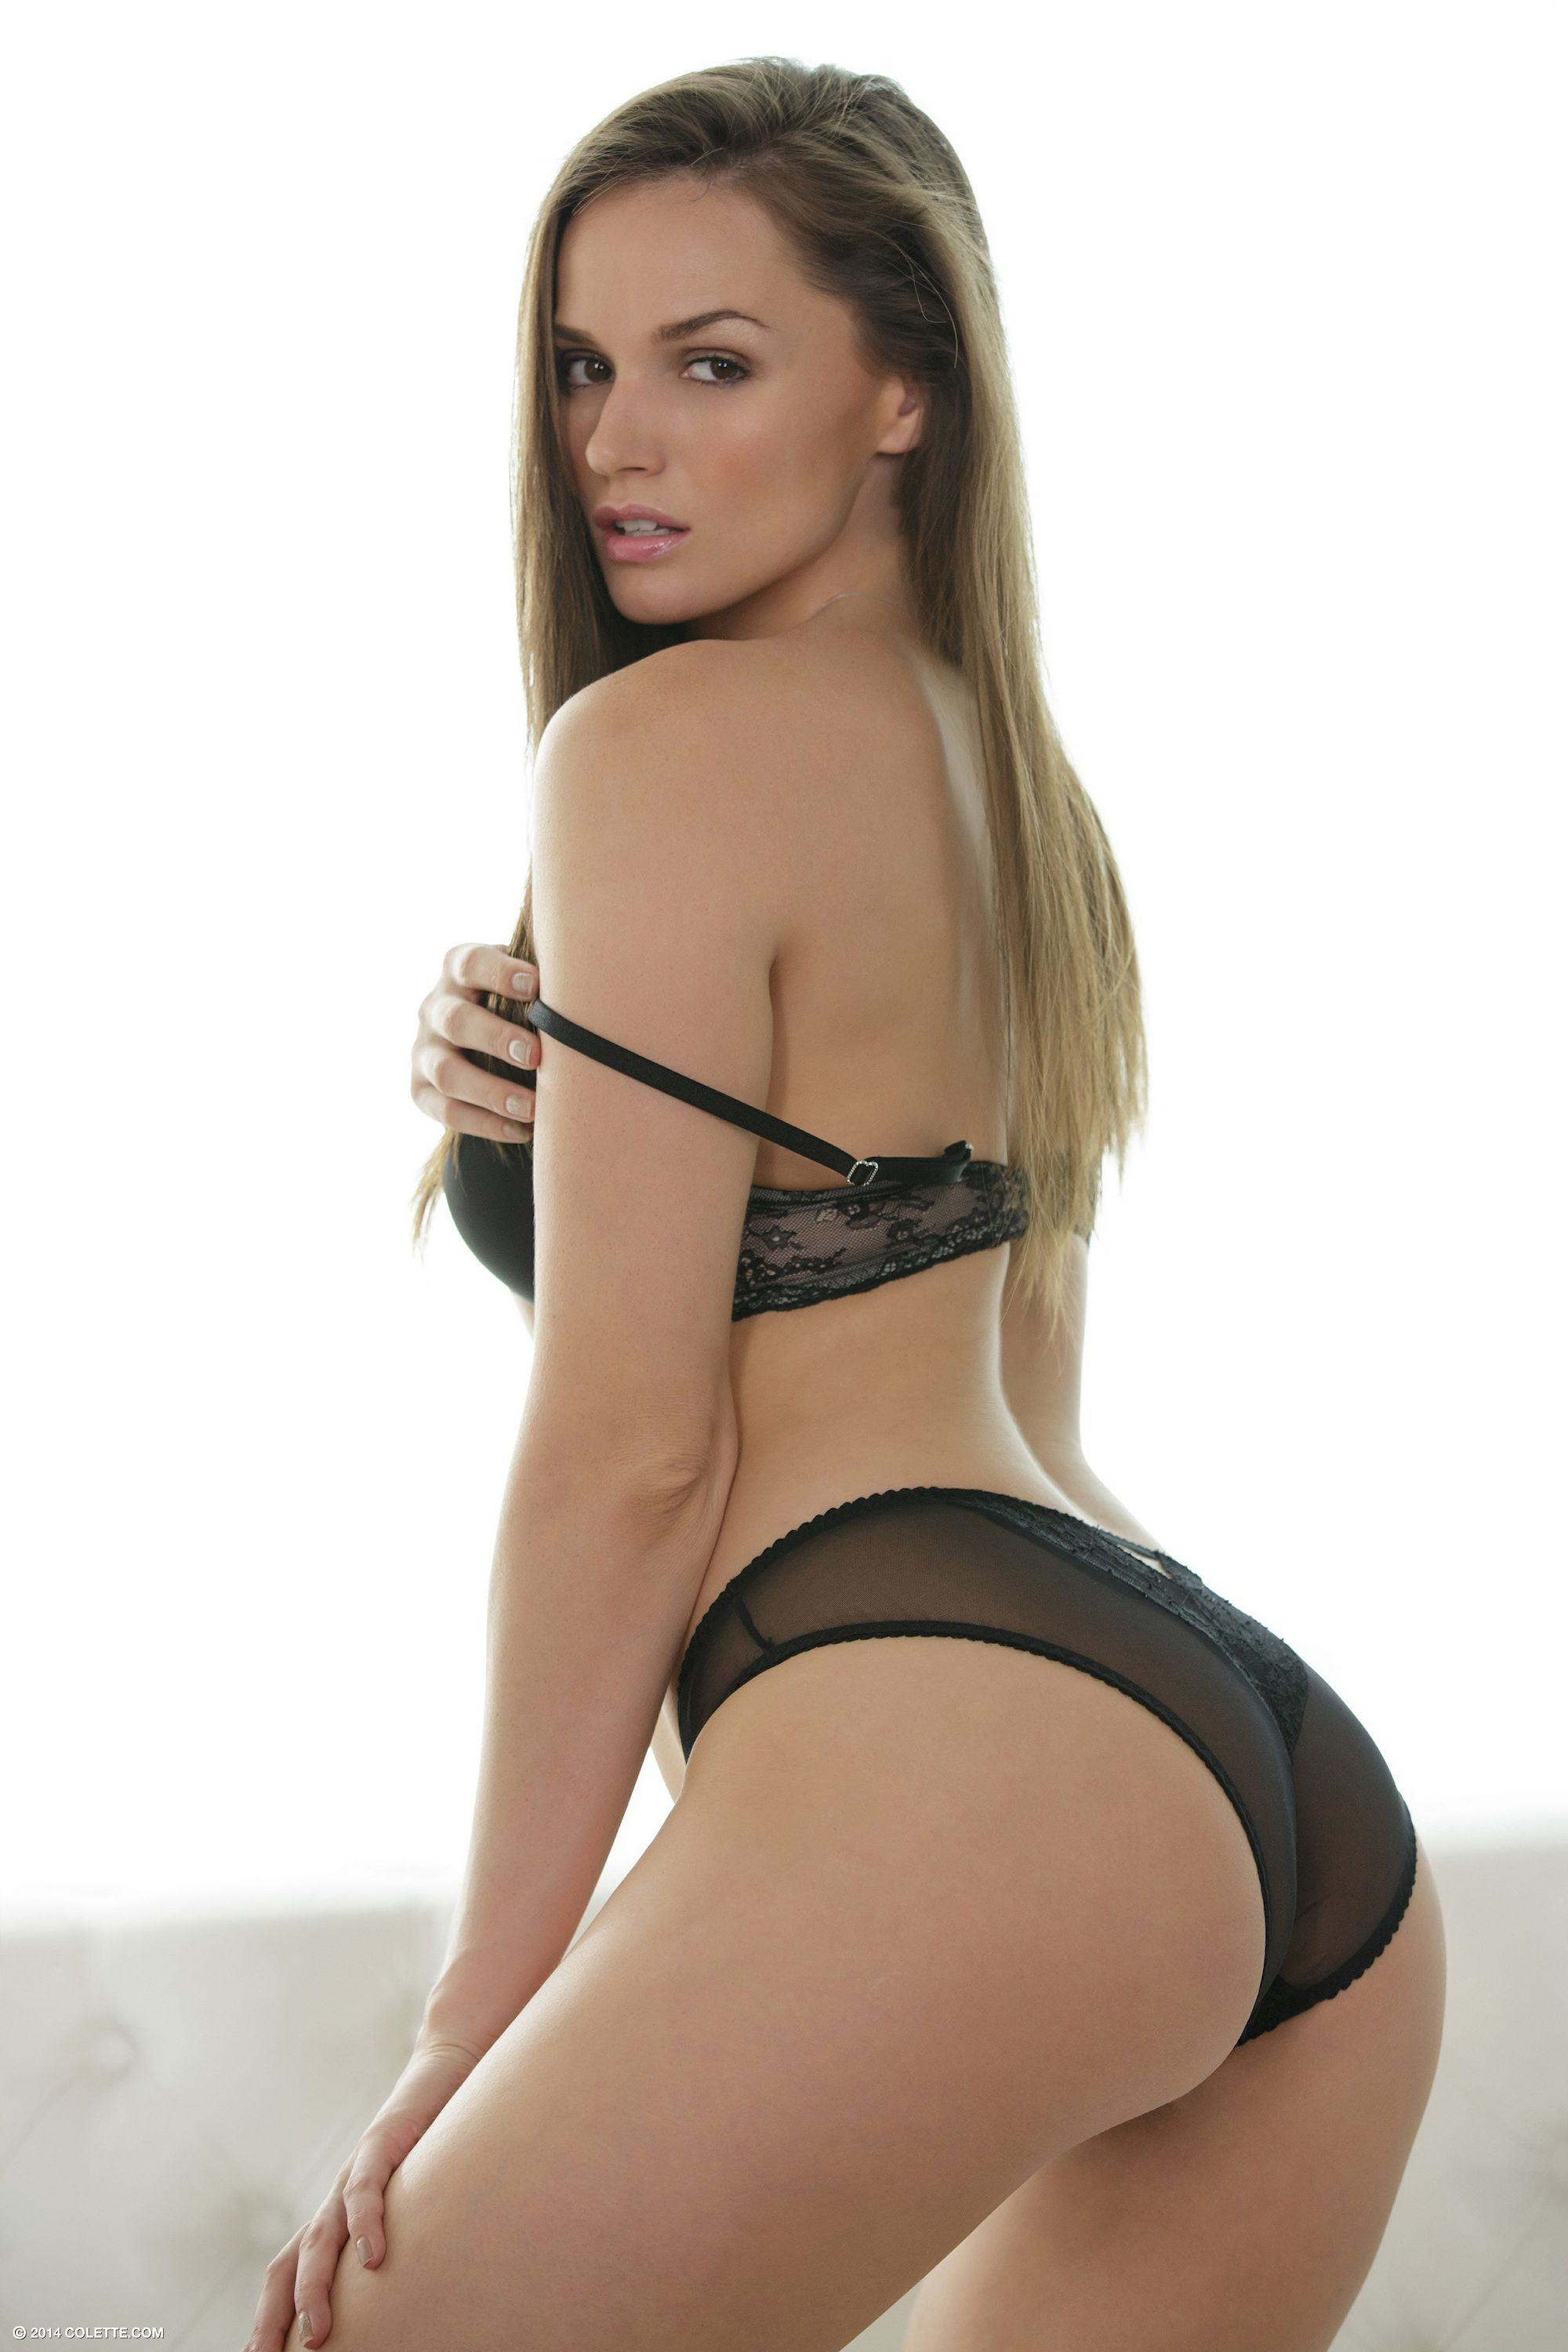 Tori Black Hot Pic